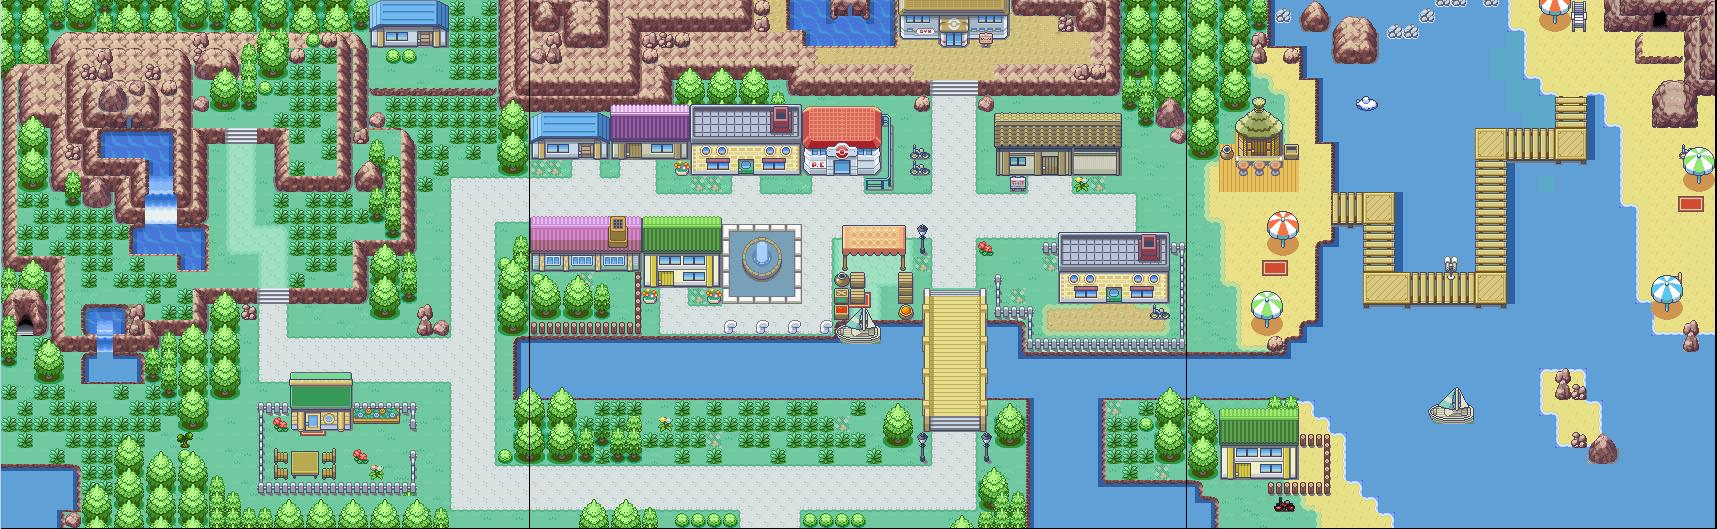 The gallery for Pokemon World Online Map